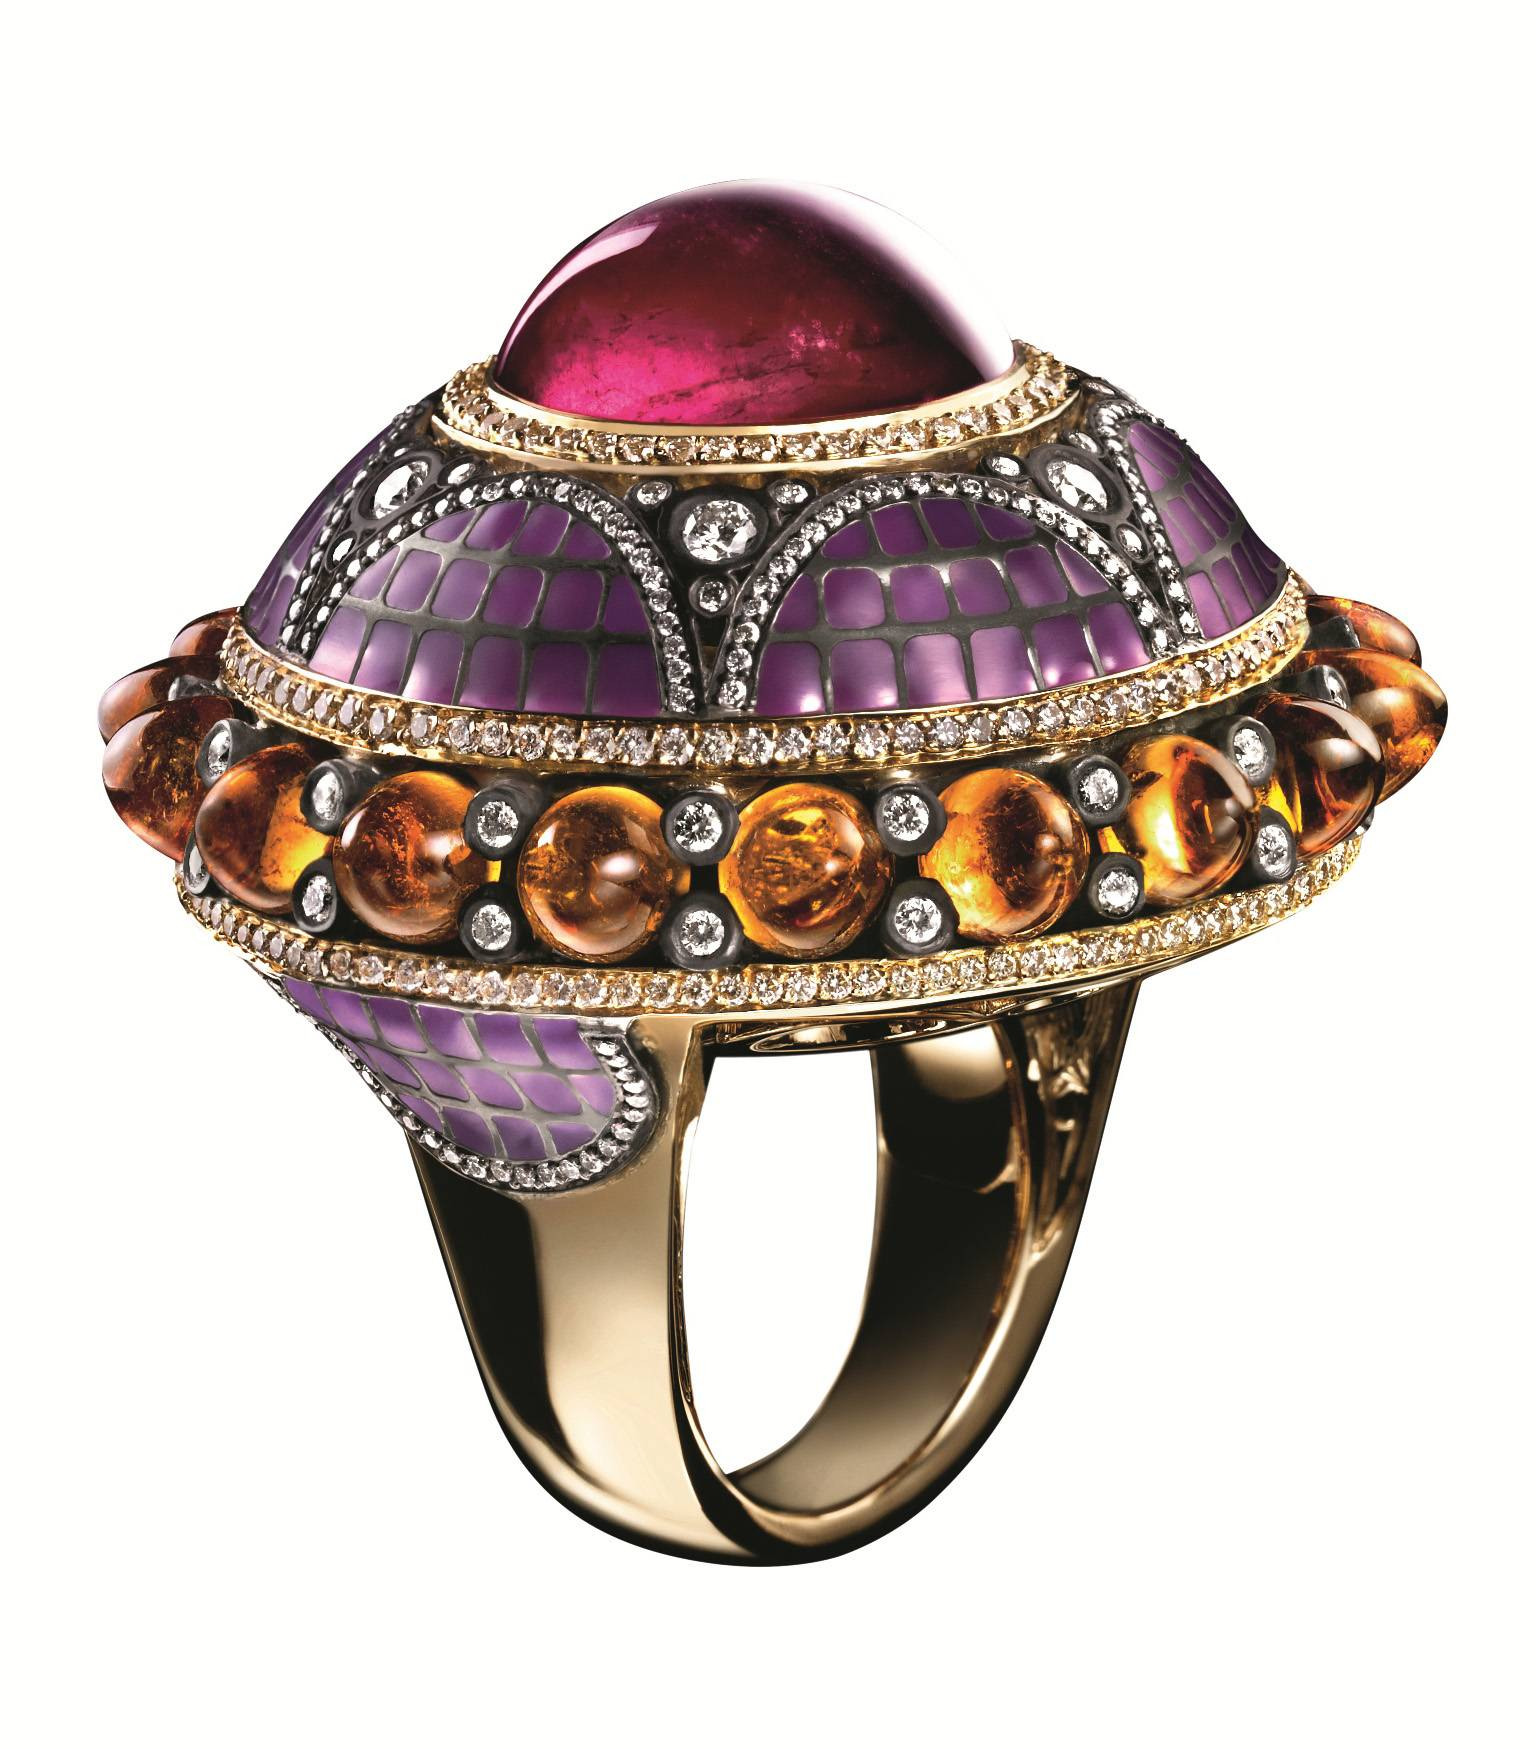 Sun_set_on_Istanbul_ring_in_rubelite,_madarin_garnet_and_white_diamond_from_the_Colors_of_Emotio2_-_Copy[1]